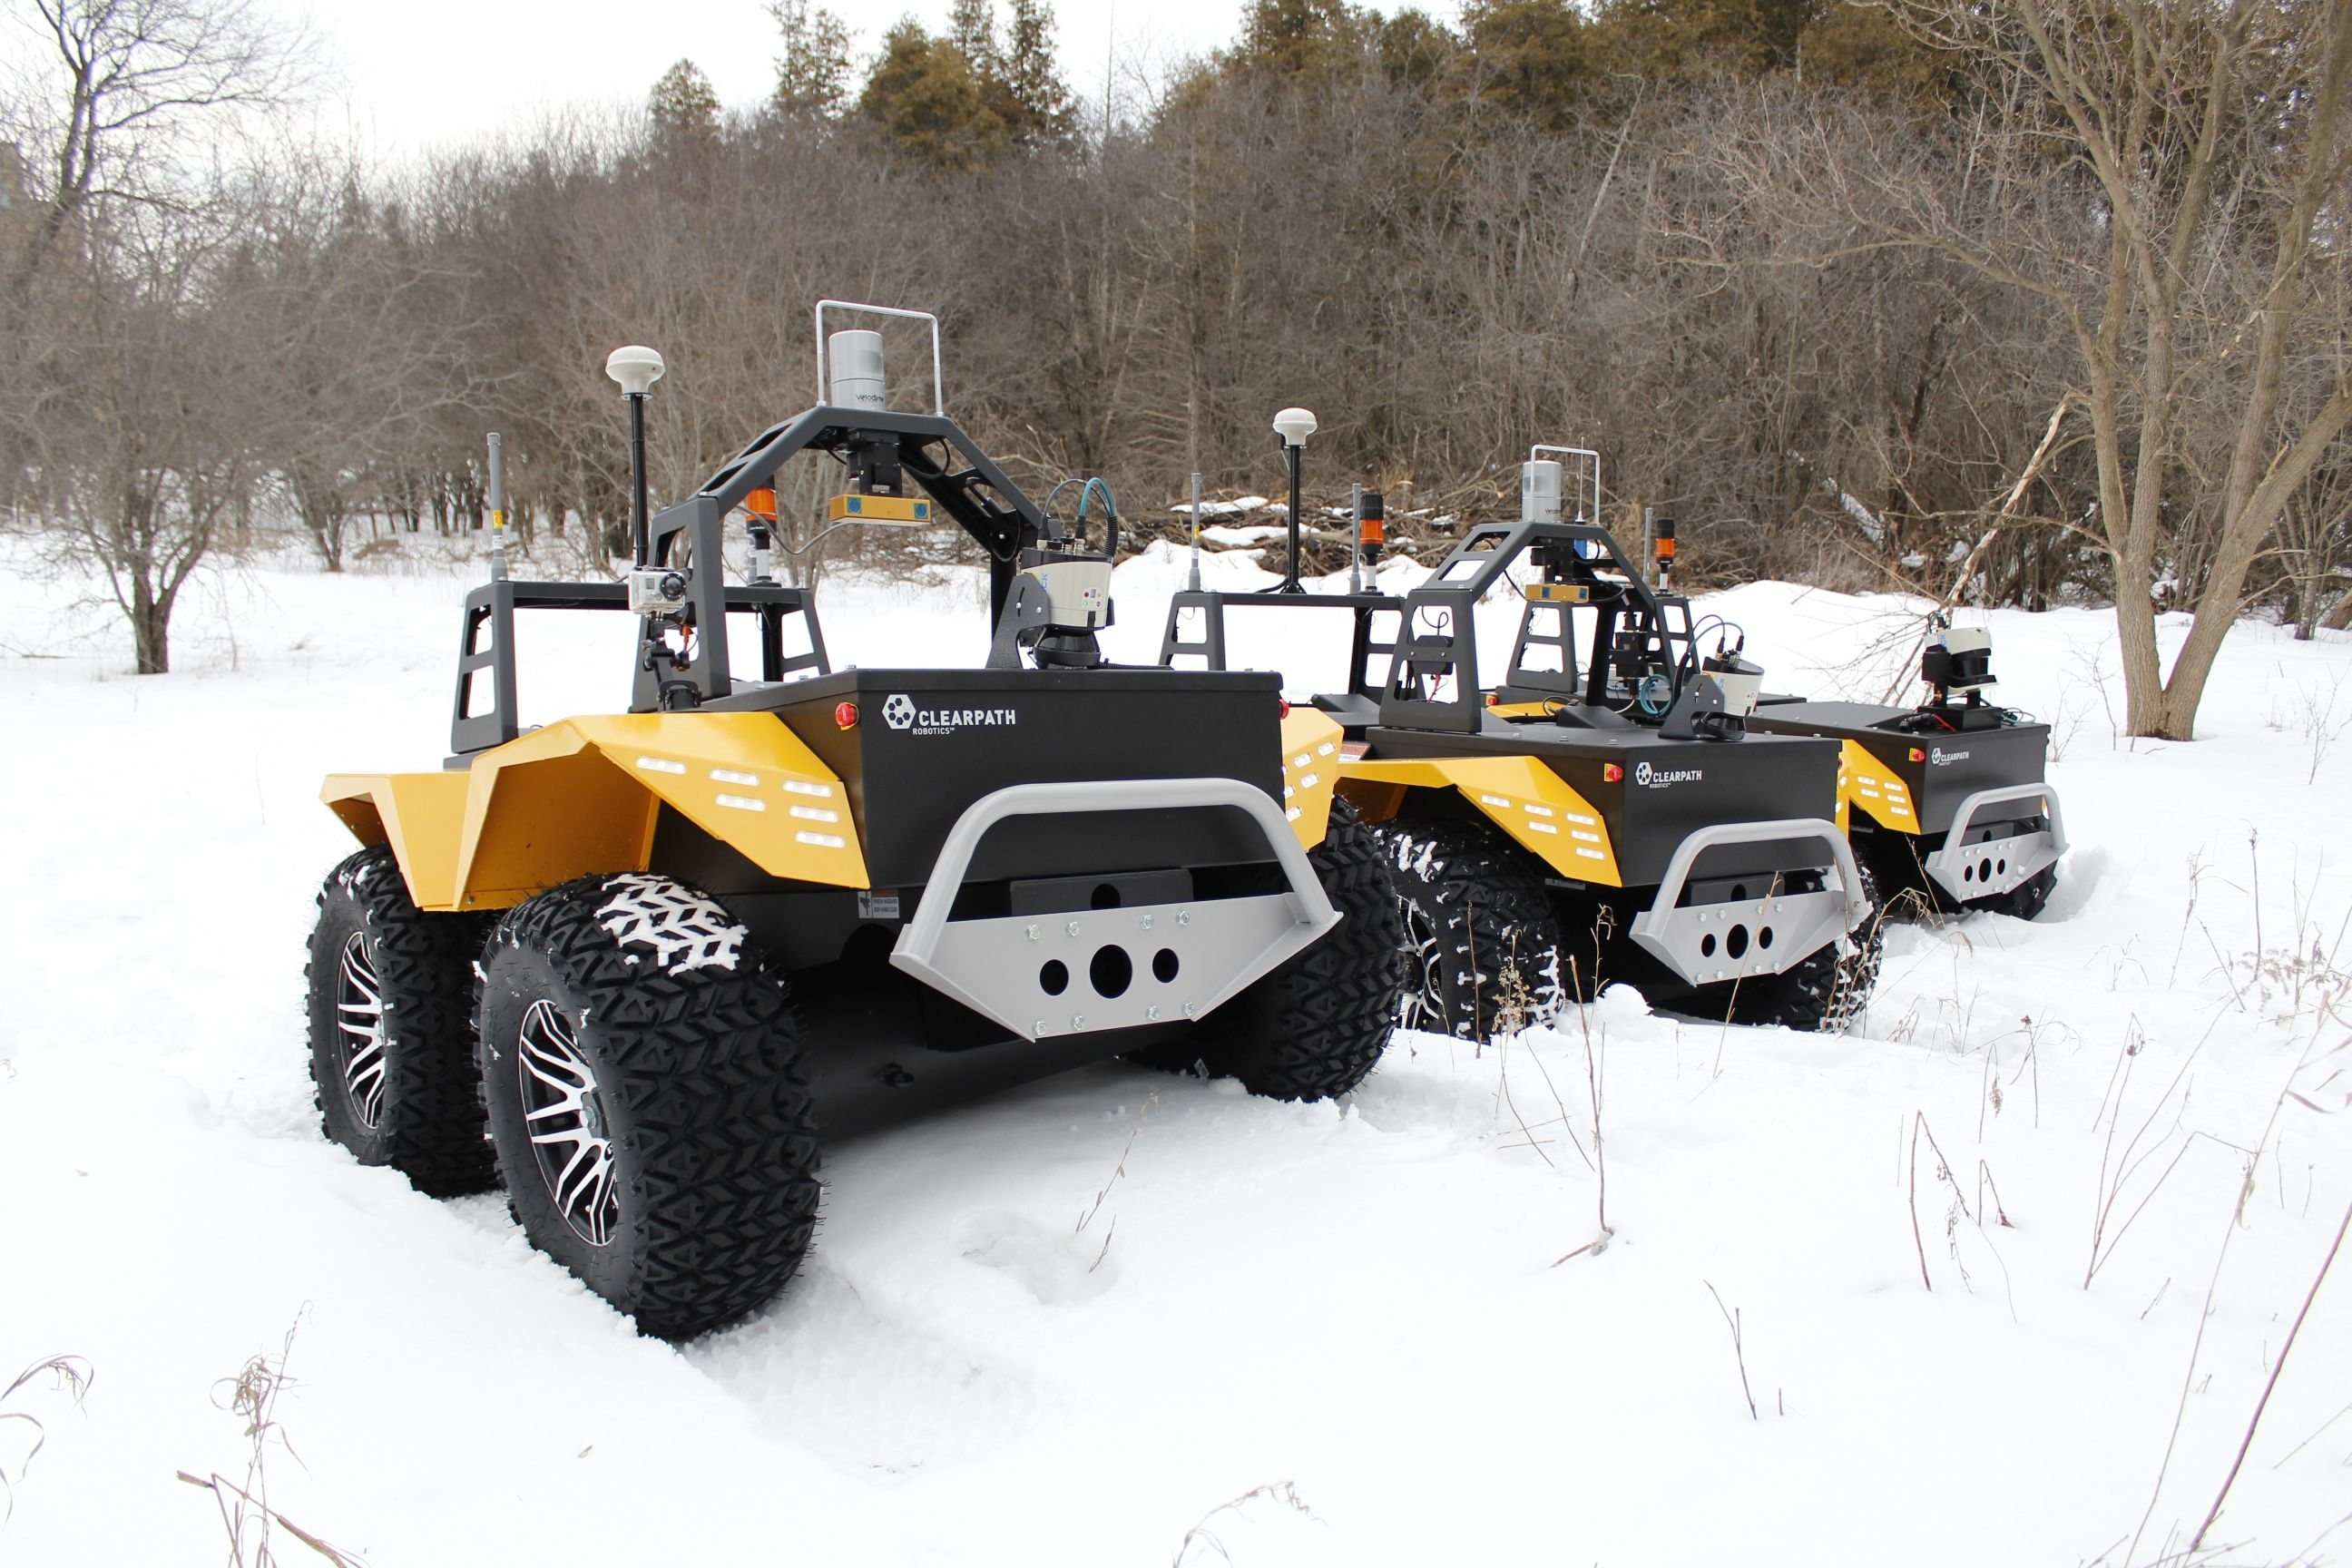 Clearpath Robotics Grizzly